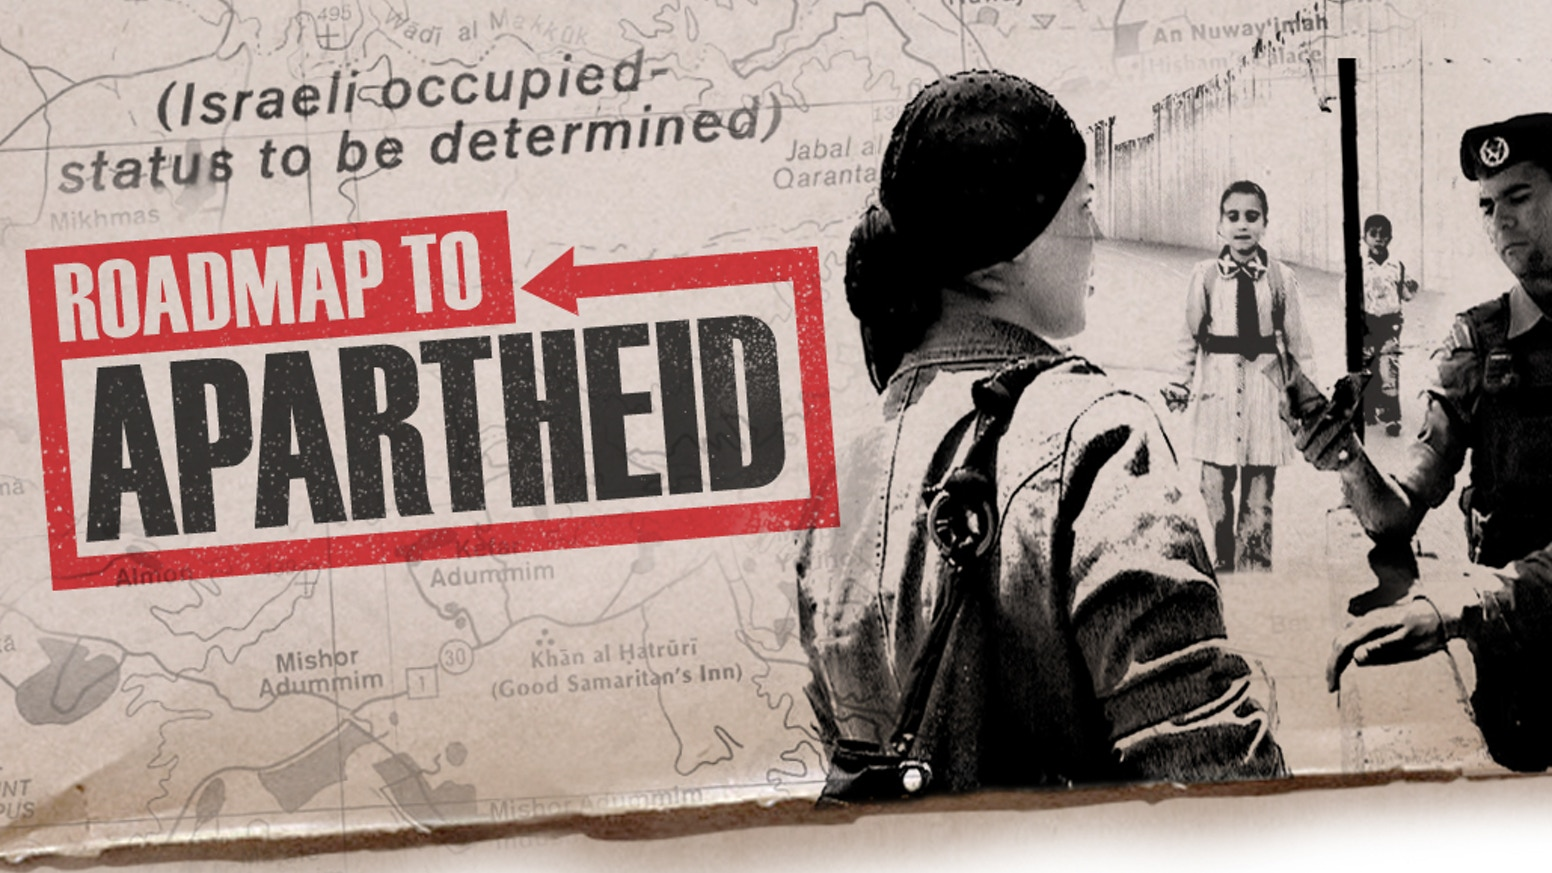 Rodmap to Apartheid